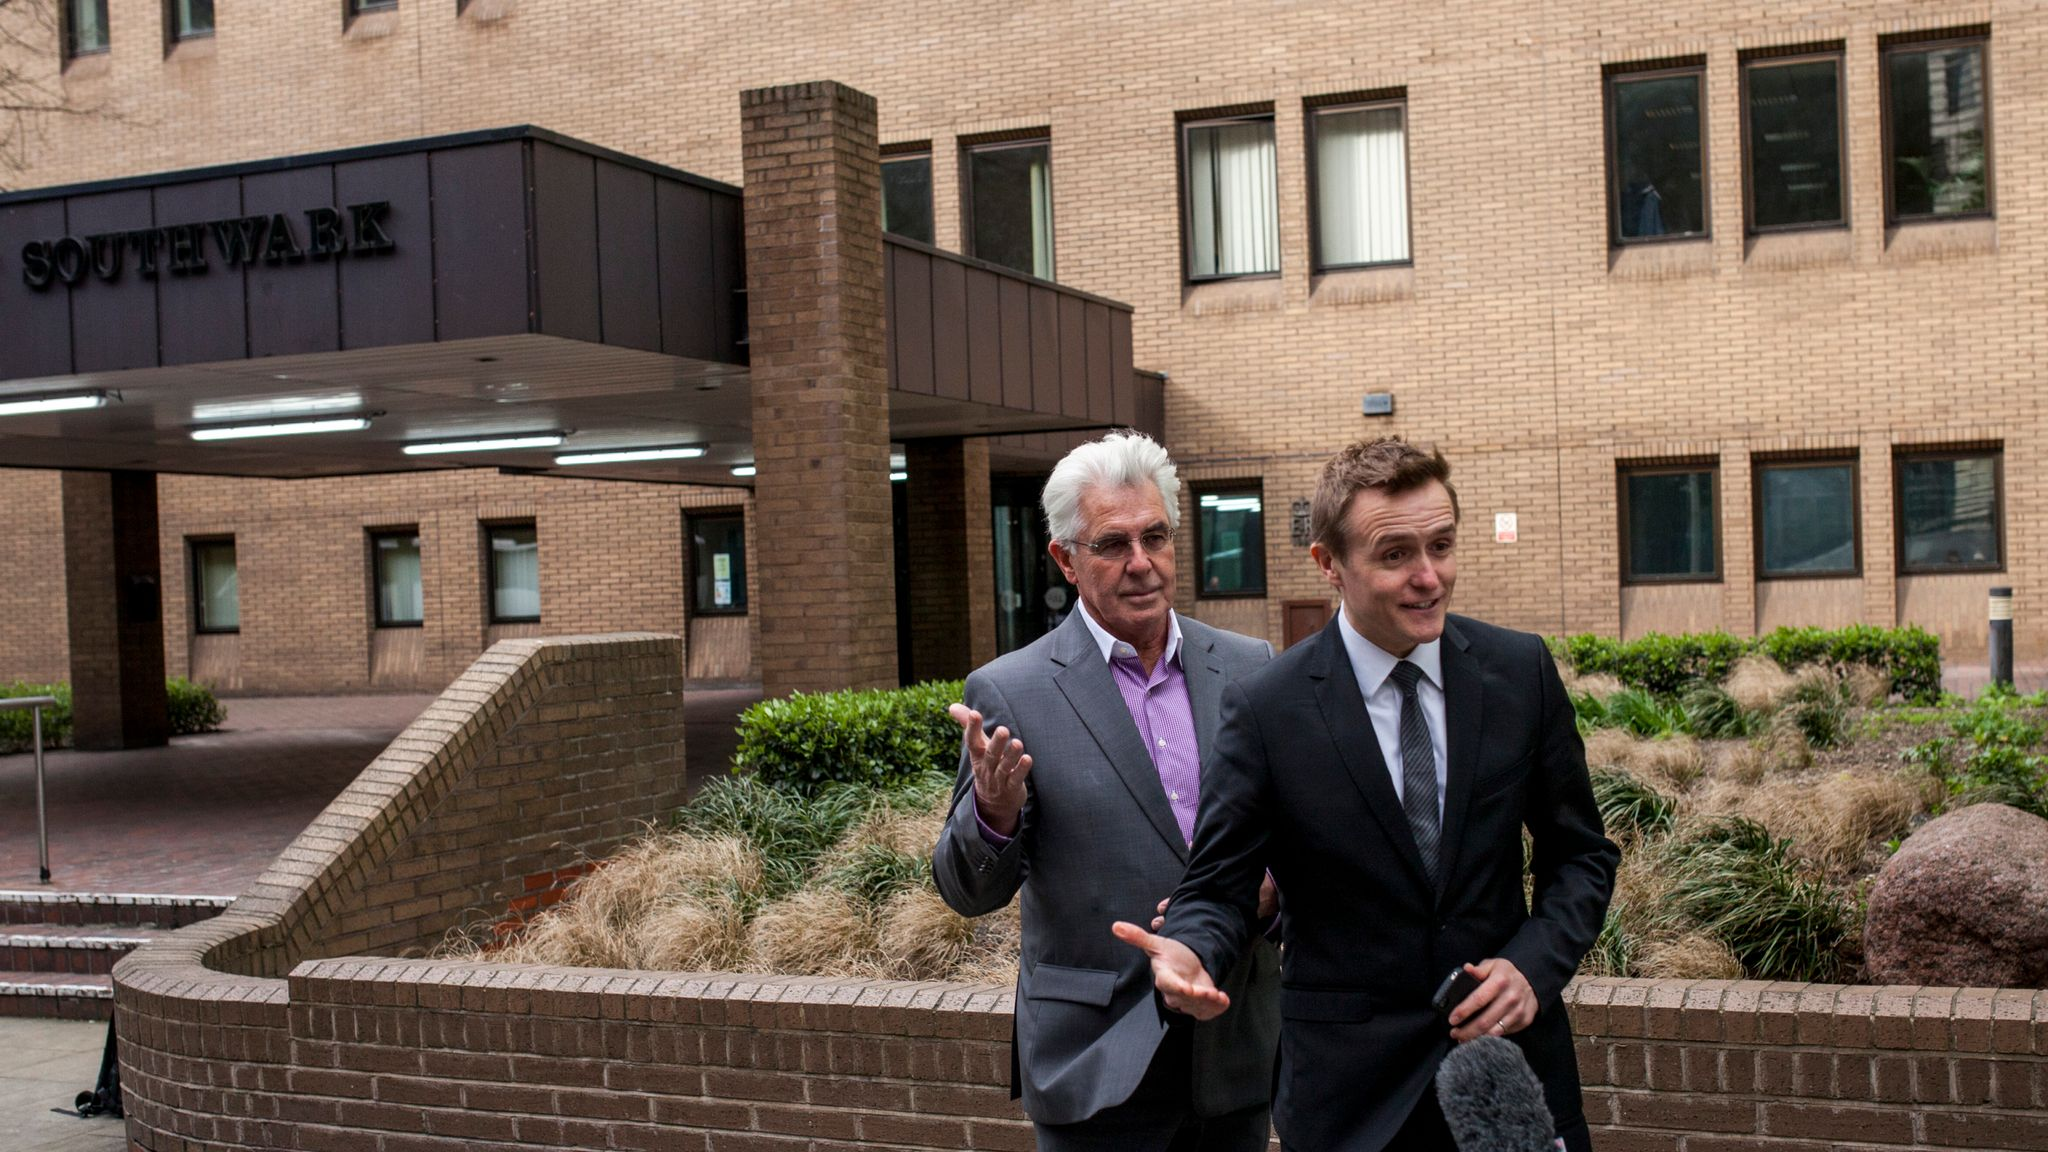 Why Max Clifford crept up behi...